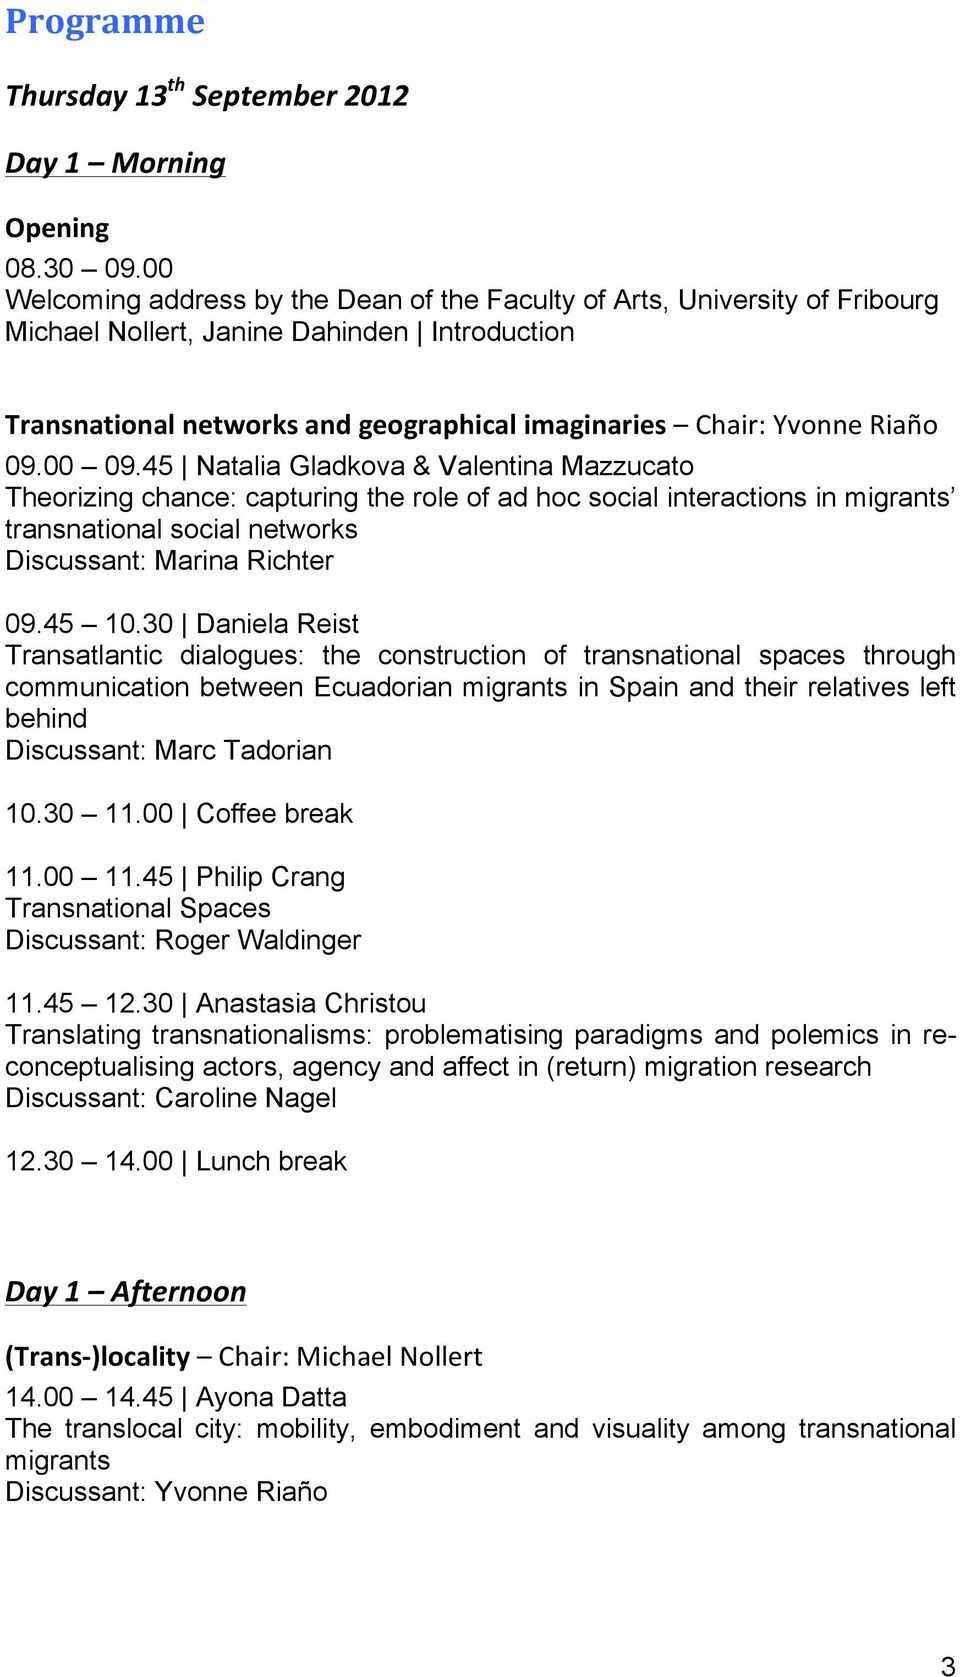 09.00 09.45 Natalia Gladkova & Valentina Mazzucato Theorizing chance: capturing the role of ad hoc social interactions in migrants transnational social networks Discussant: Marina Richter 09.45 10.